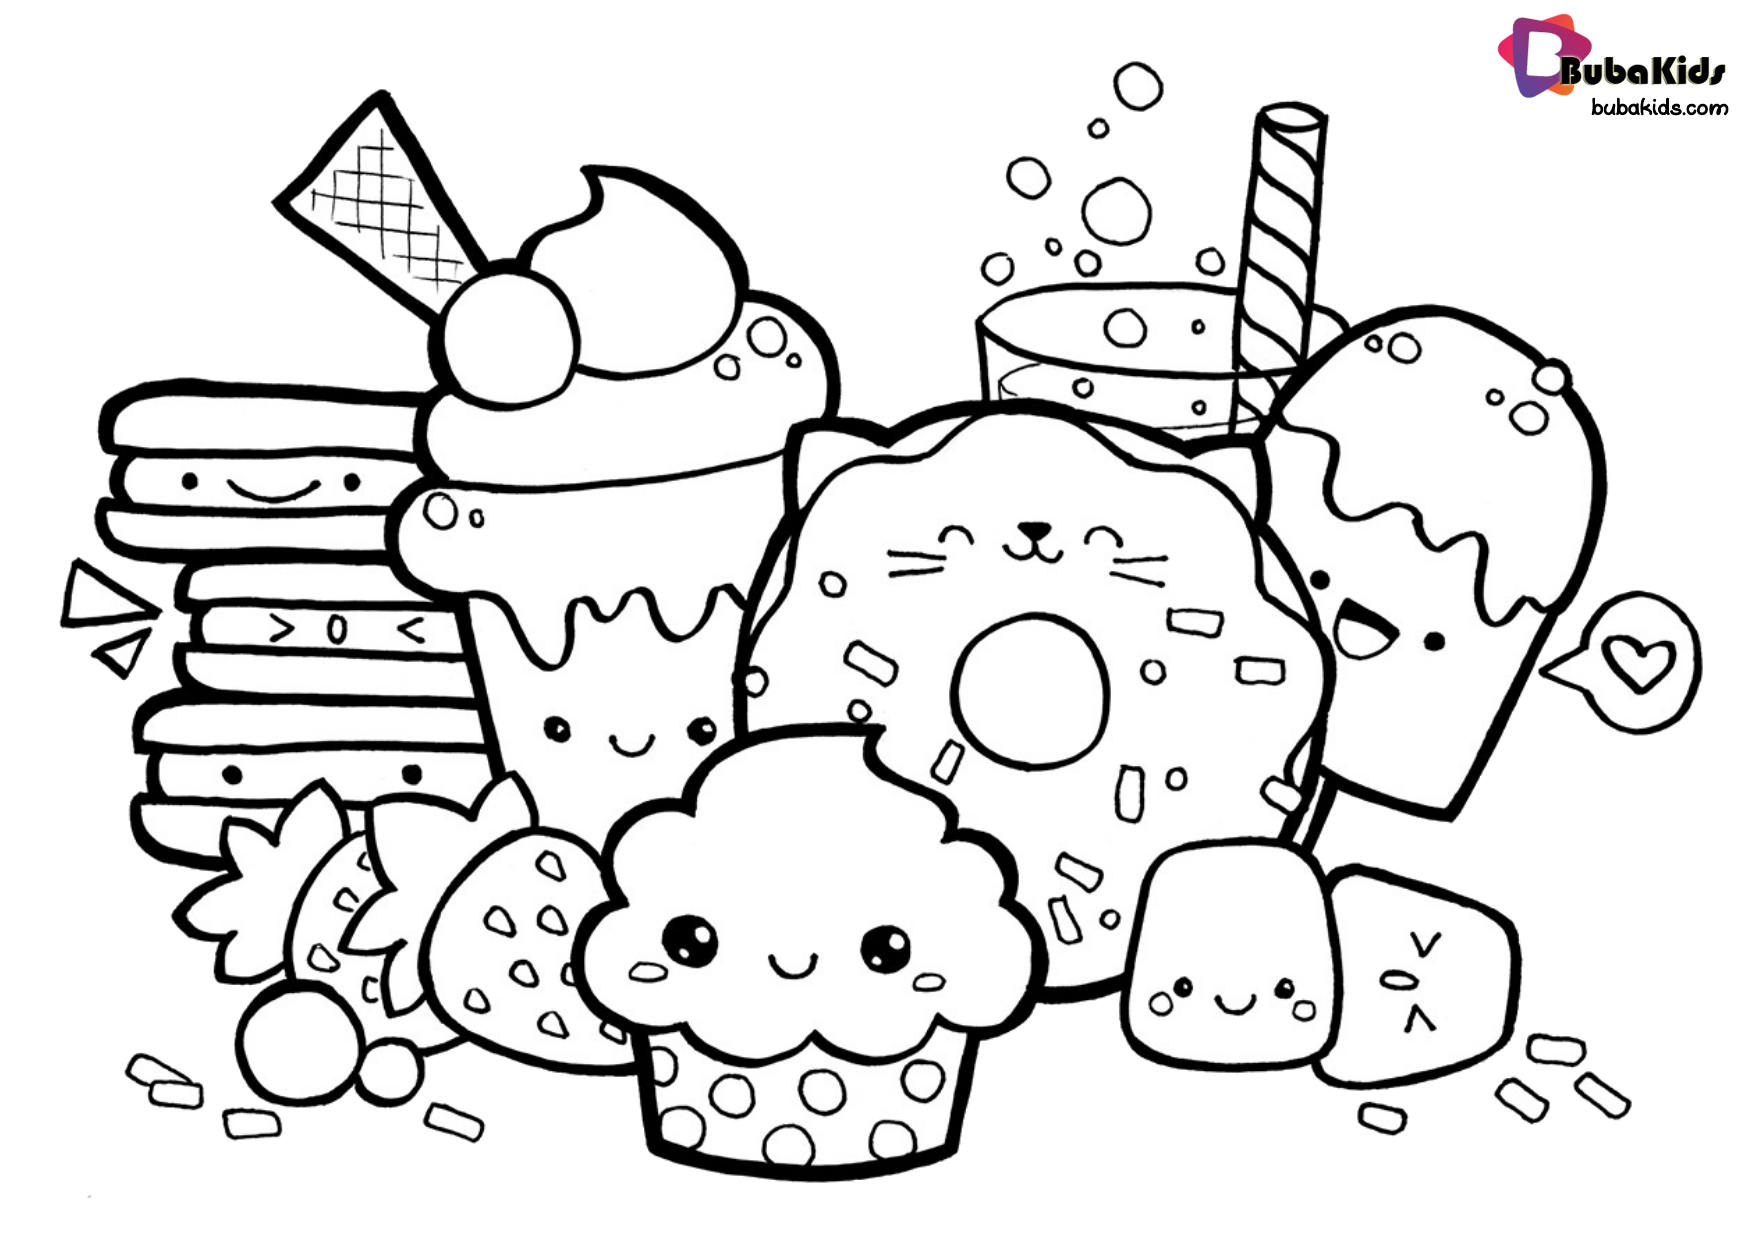 cartoon food coloring pages cartoon food coloring pages at getdrawings free download food pages cartoon coloring